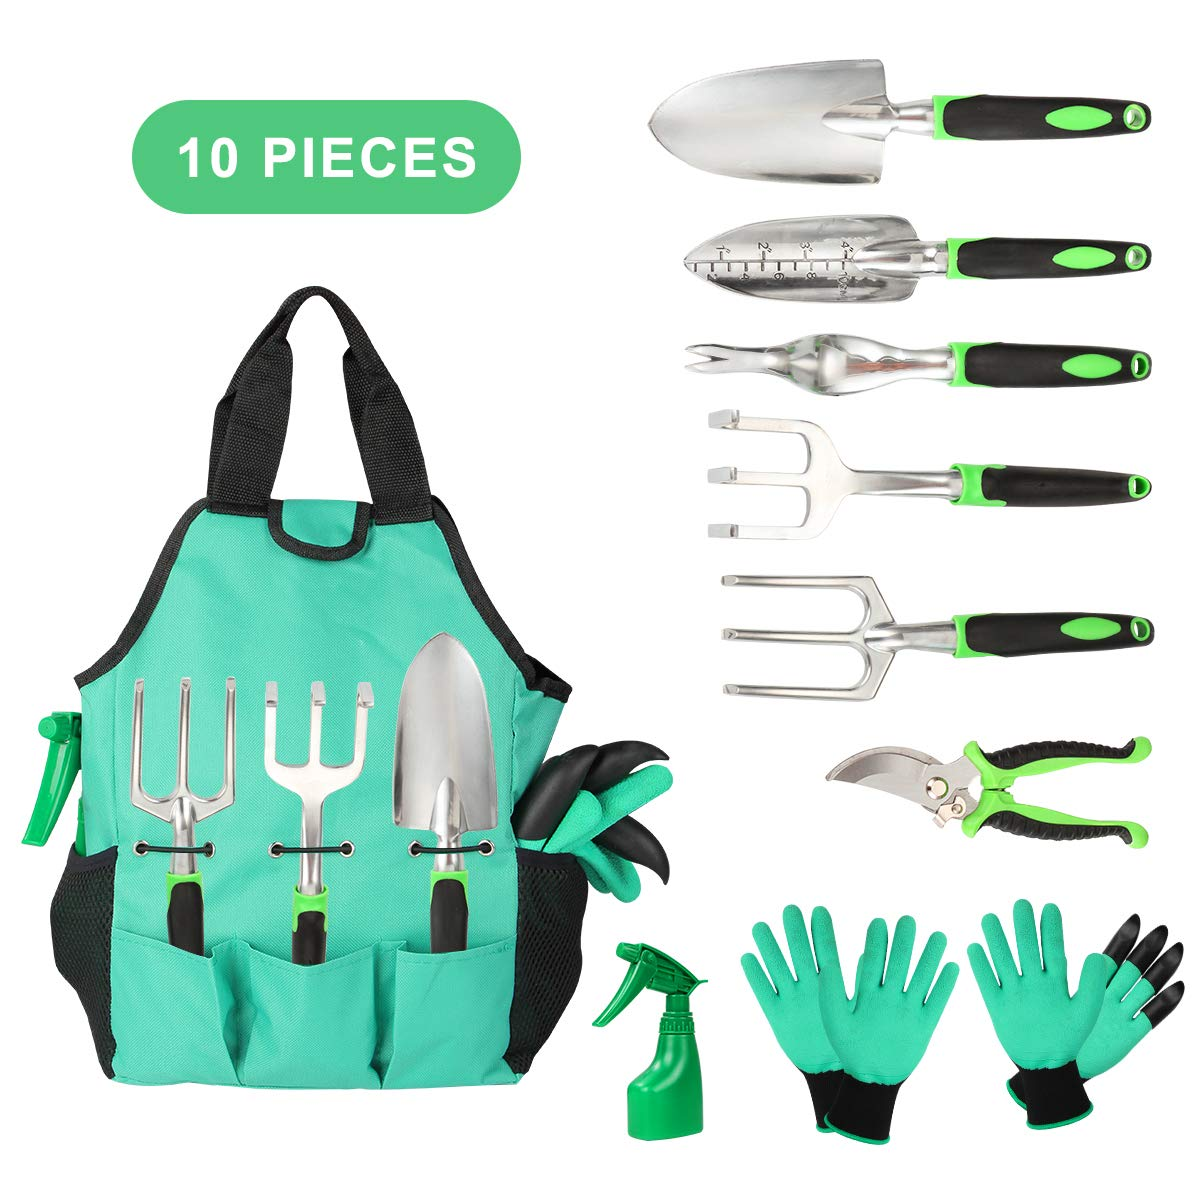 Garden Tools Set 10 Pieces, Gardening Kit with Heavy Duty Aluminum Hand Tool and Digging Claw Gardening Gloves, Vegetable Herb Garden Hand Tool, Outdoor Tools Set Gifts for Men Women by Aladom by Aladom